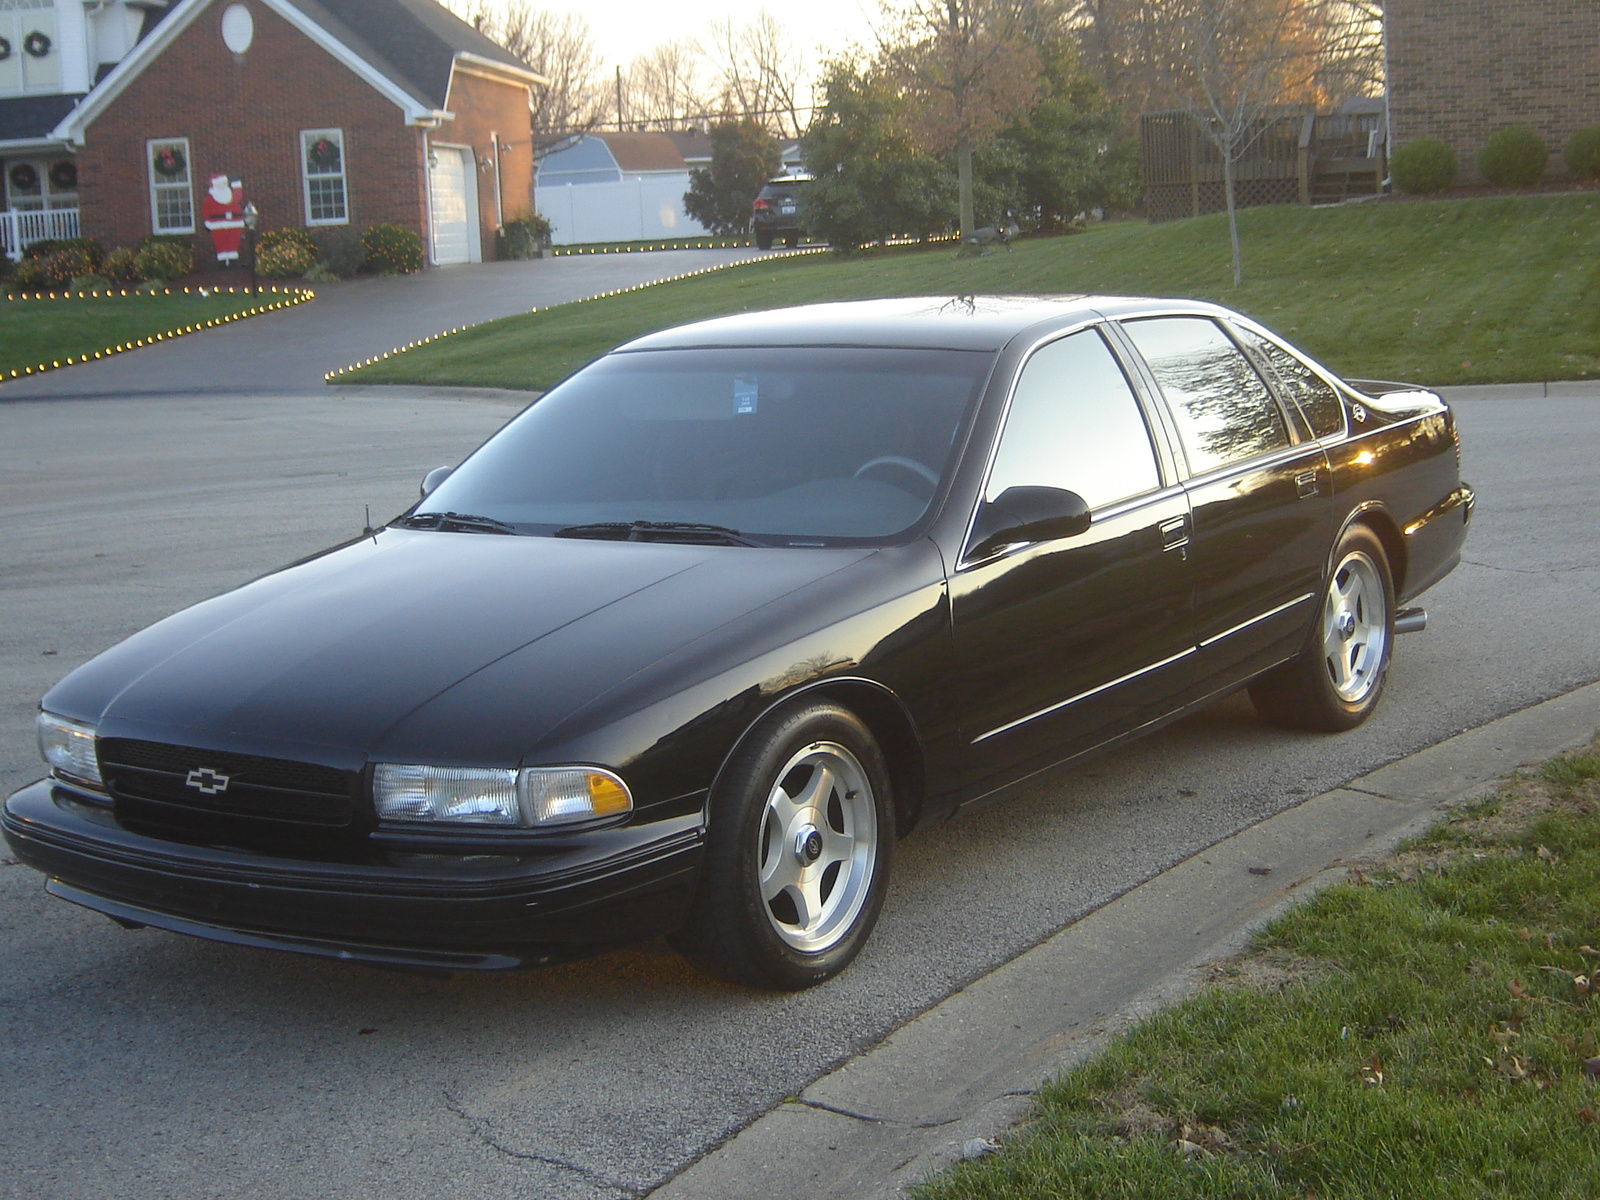 1996 Chevy Caprice For Sale Picture of 1995 Chevrolet Impala 4 Dr SS Sedan, exterior